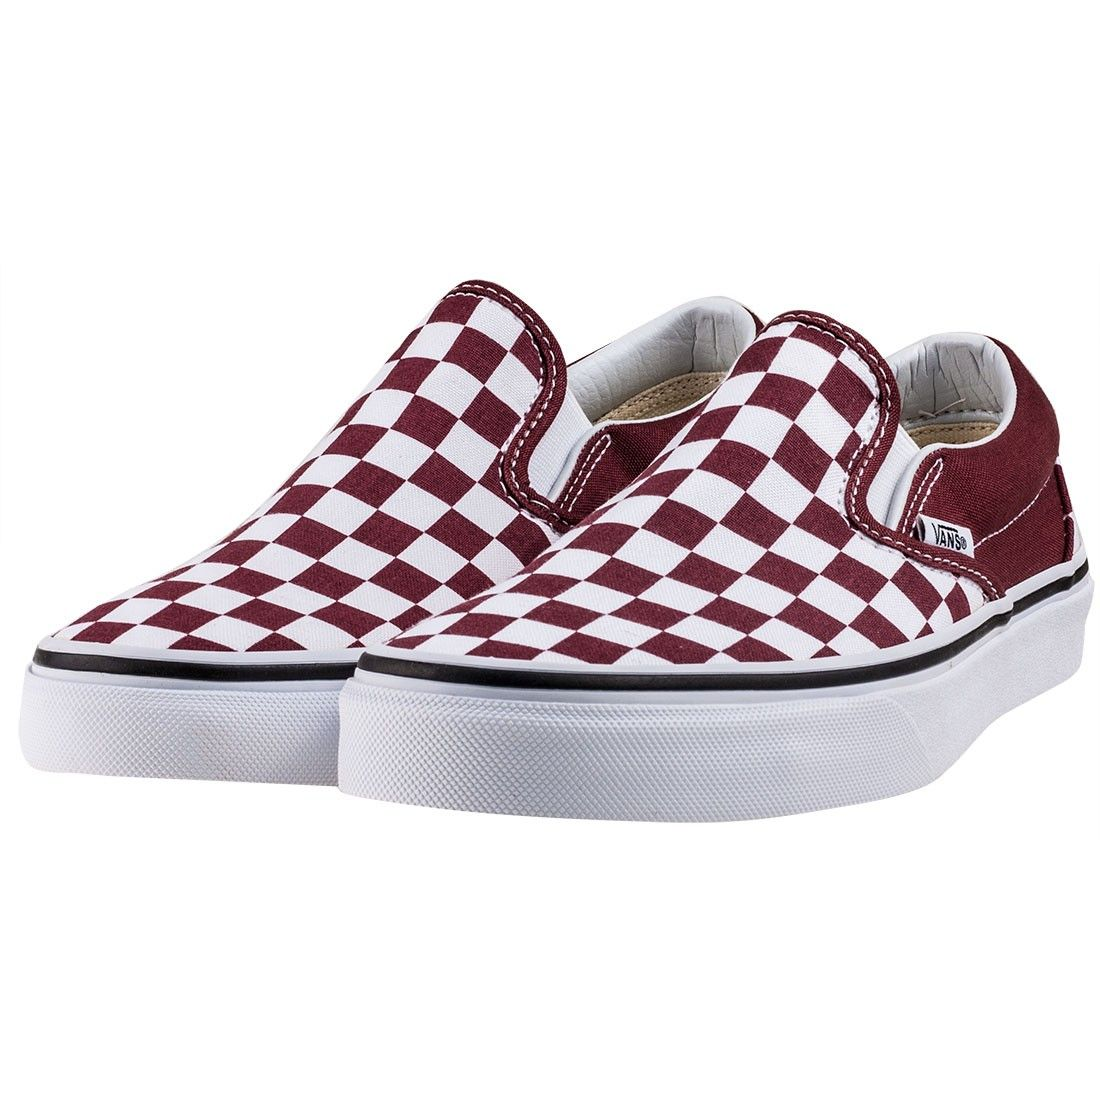 4d44a4e50b9a Vans Classic Womens Slip-on Checkerboard in Burgundy White in 2019 ...